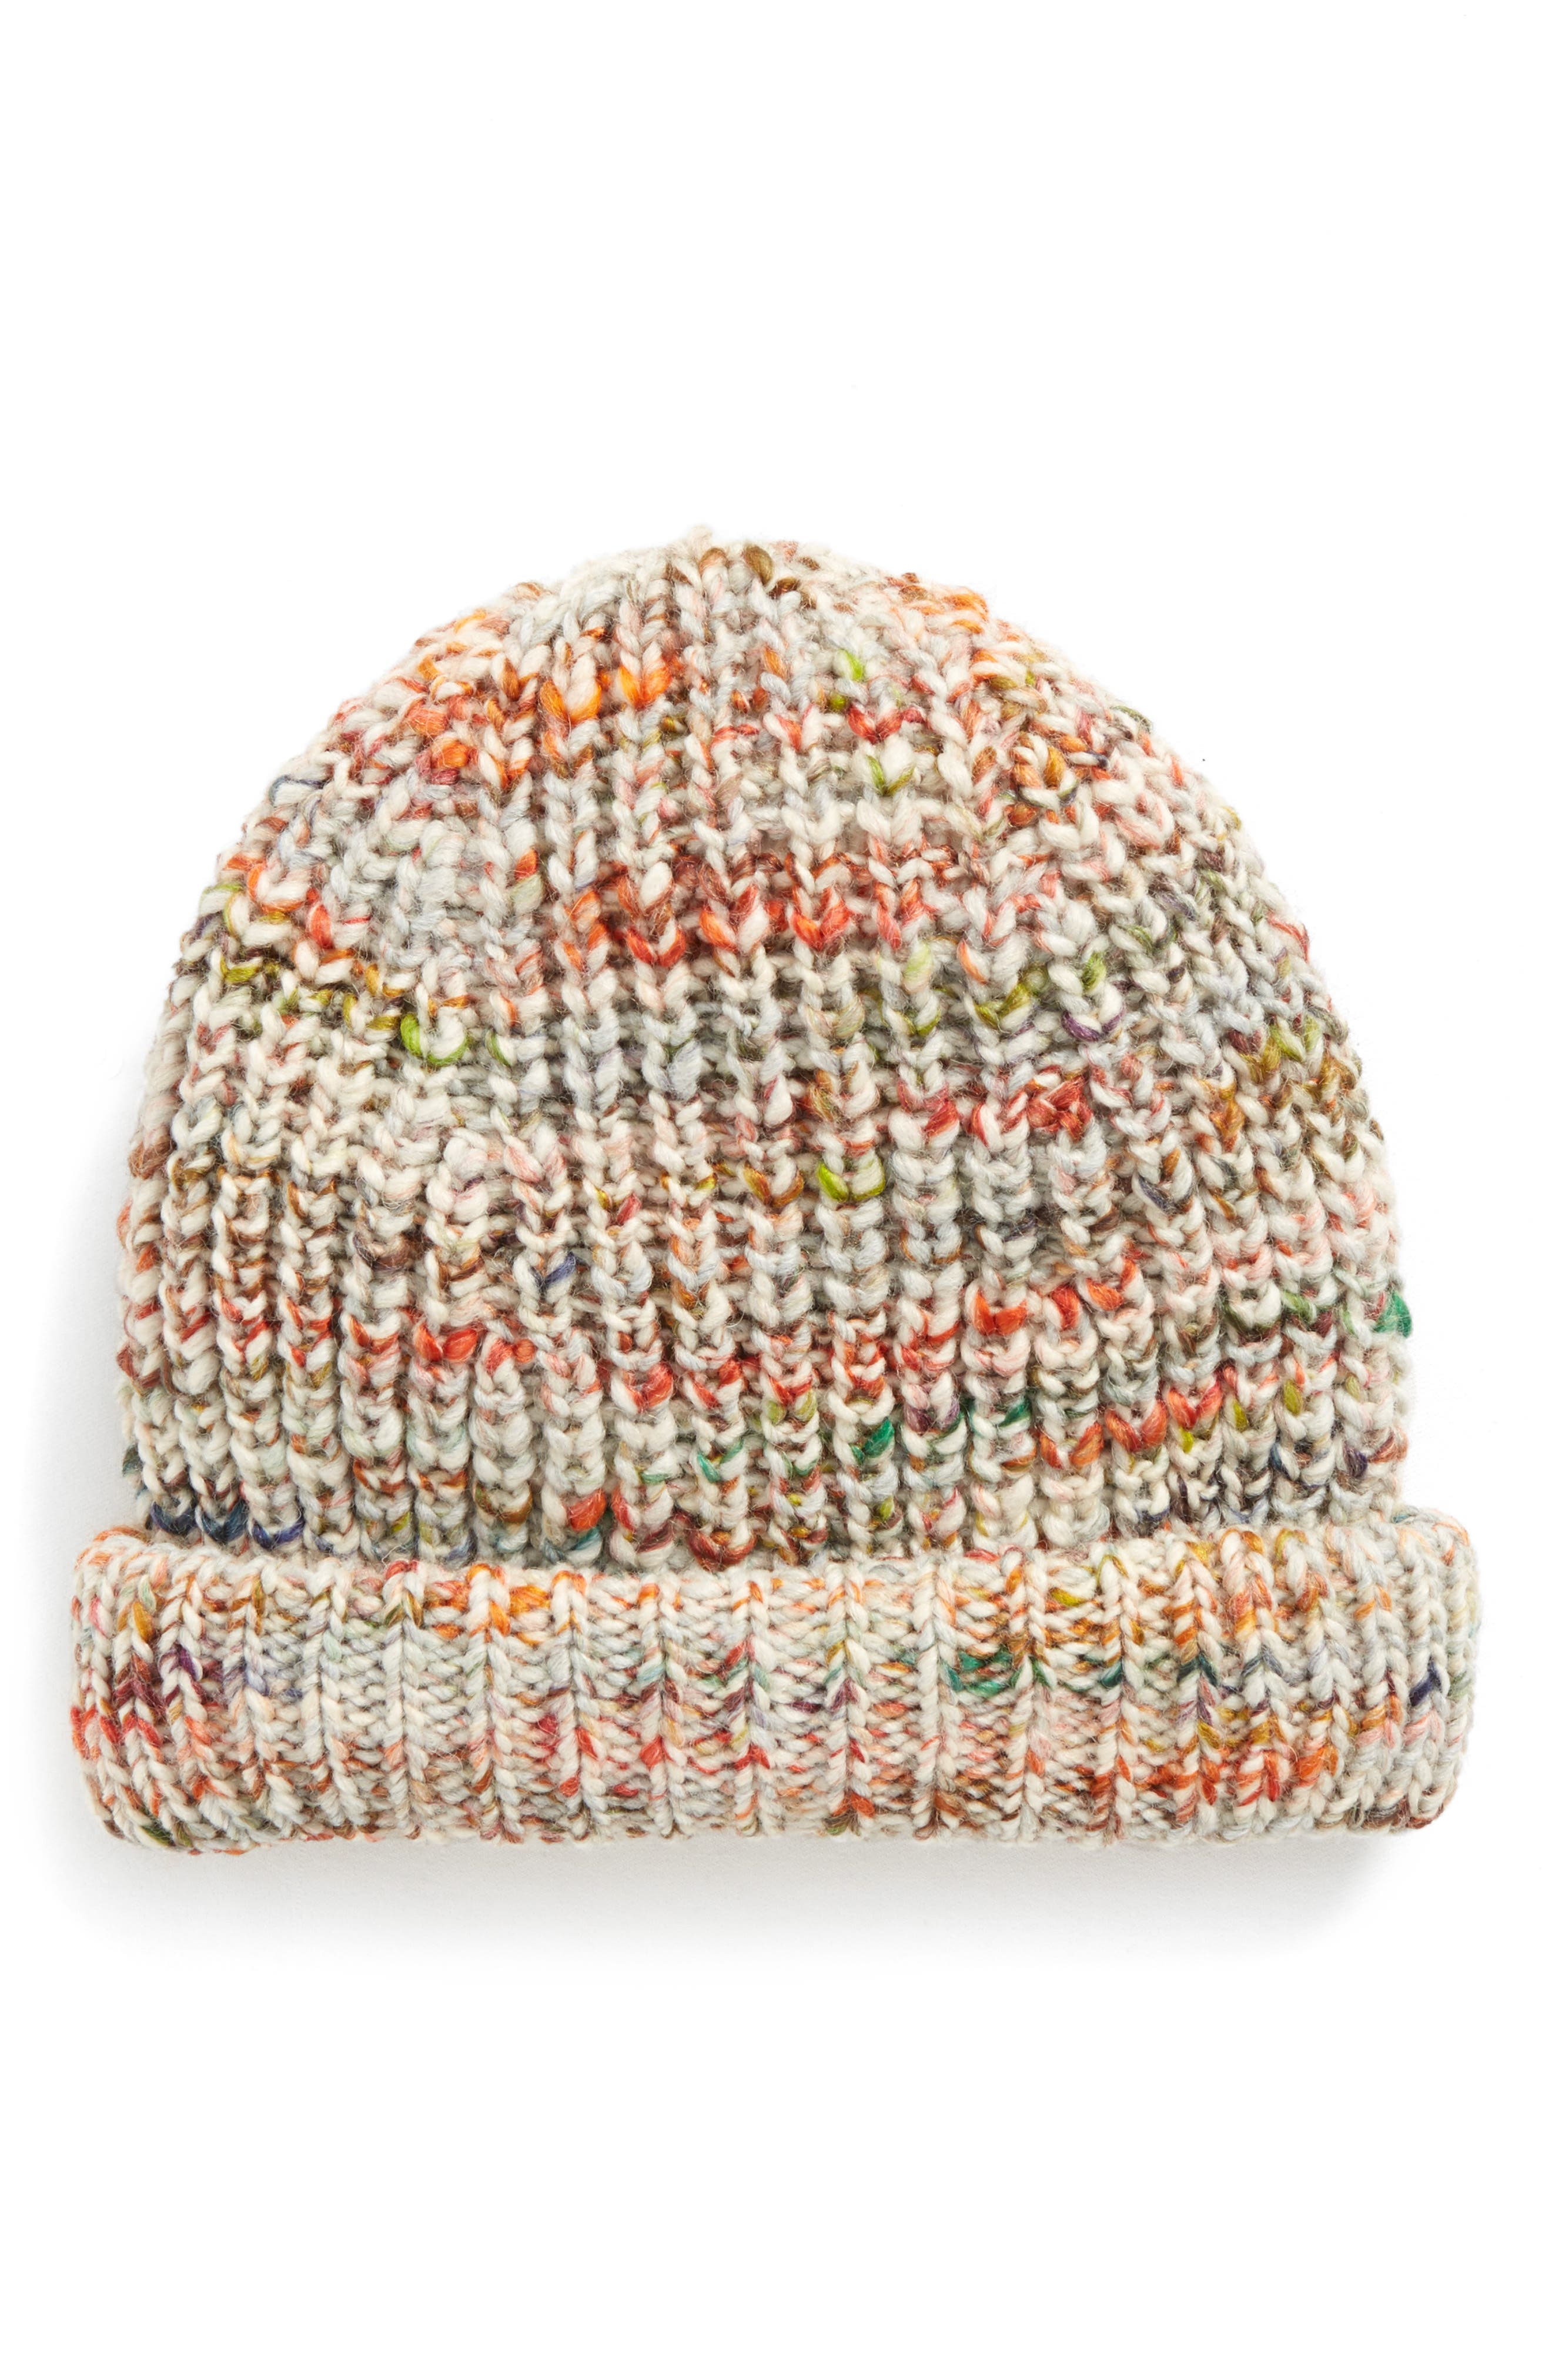 Zefir Knit Beanie,                             Main thumbnail 1, color,                             100